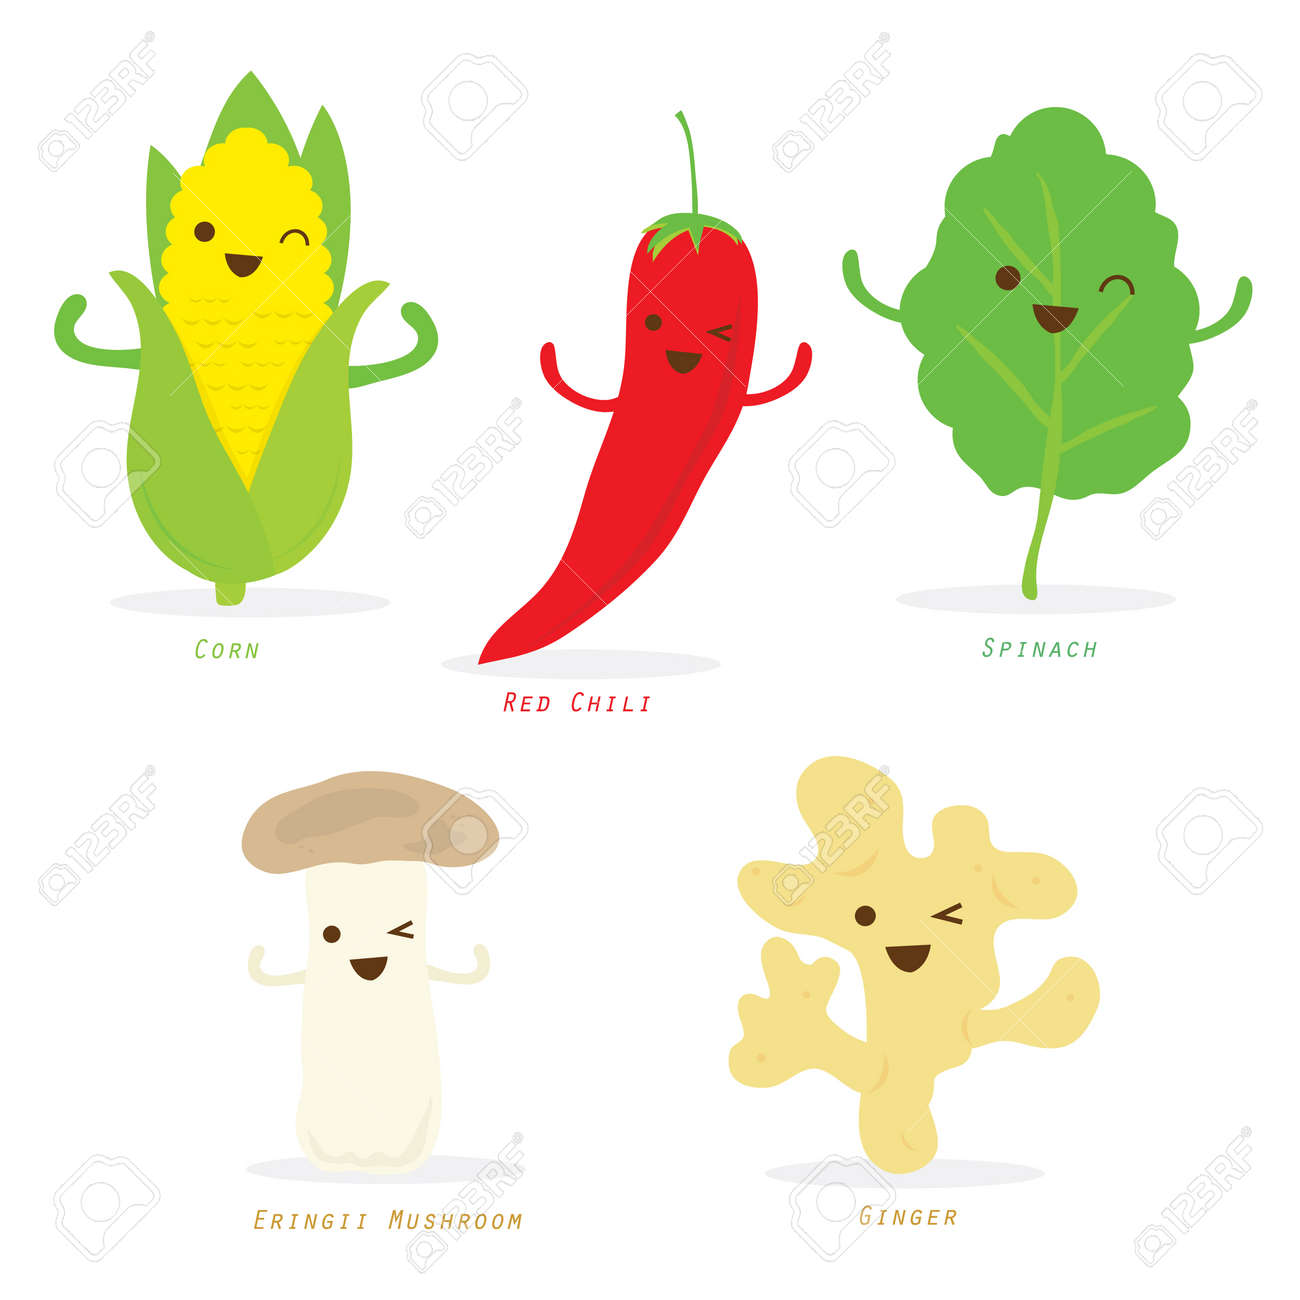 Ginger Desenho within vegetable cartoon cute set red chili corn spinach ginger eringii